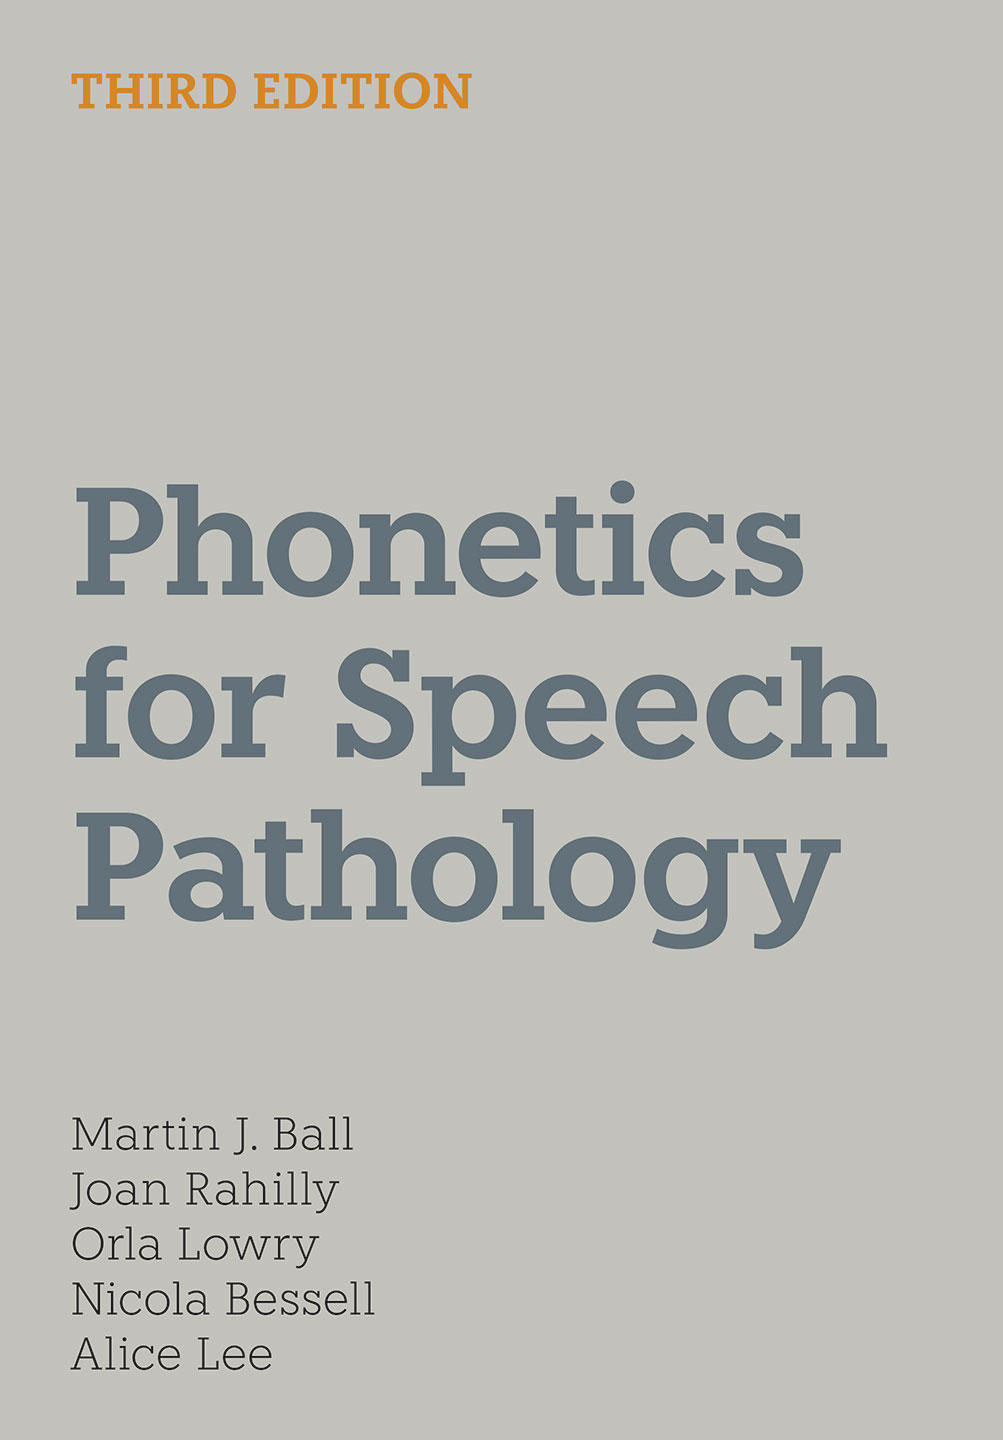 Phonetics for Speech Pathology